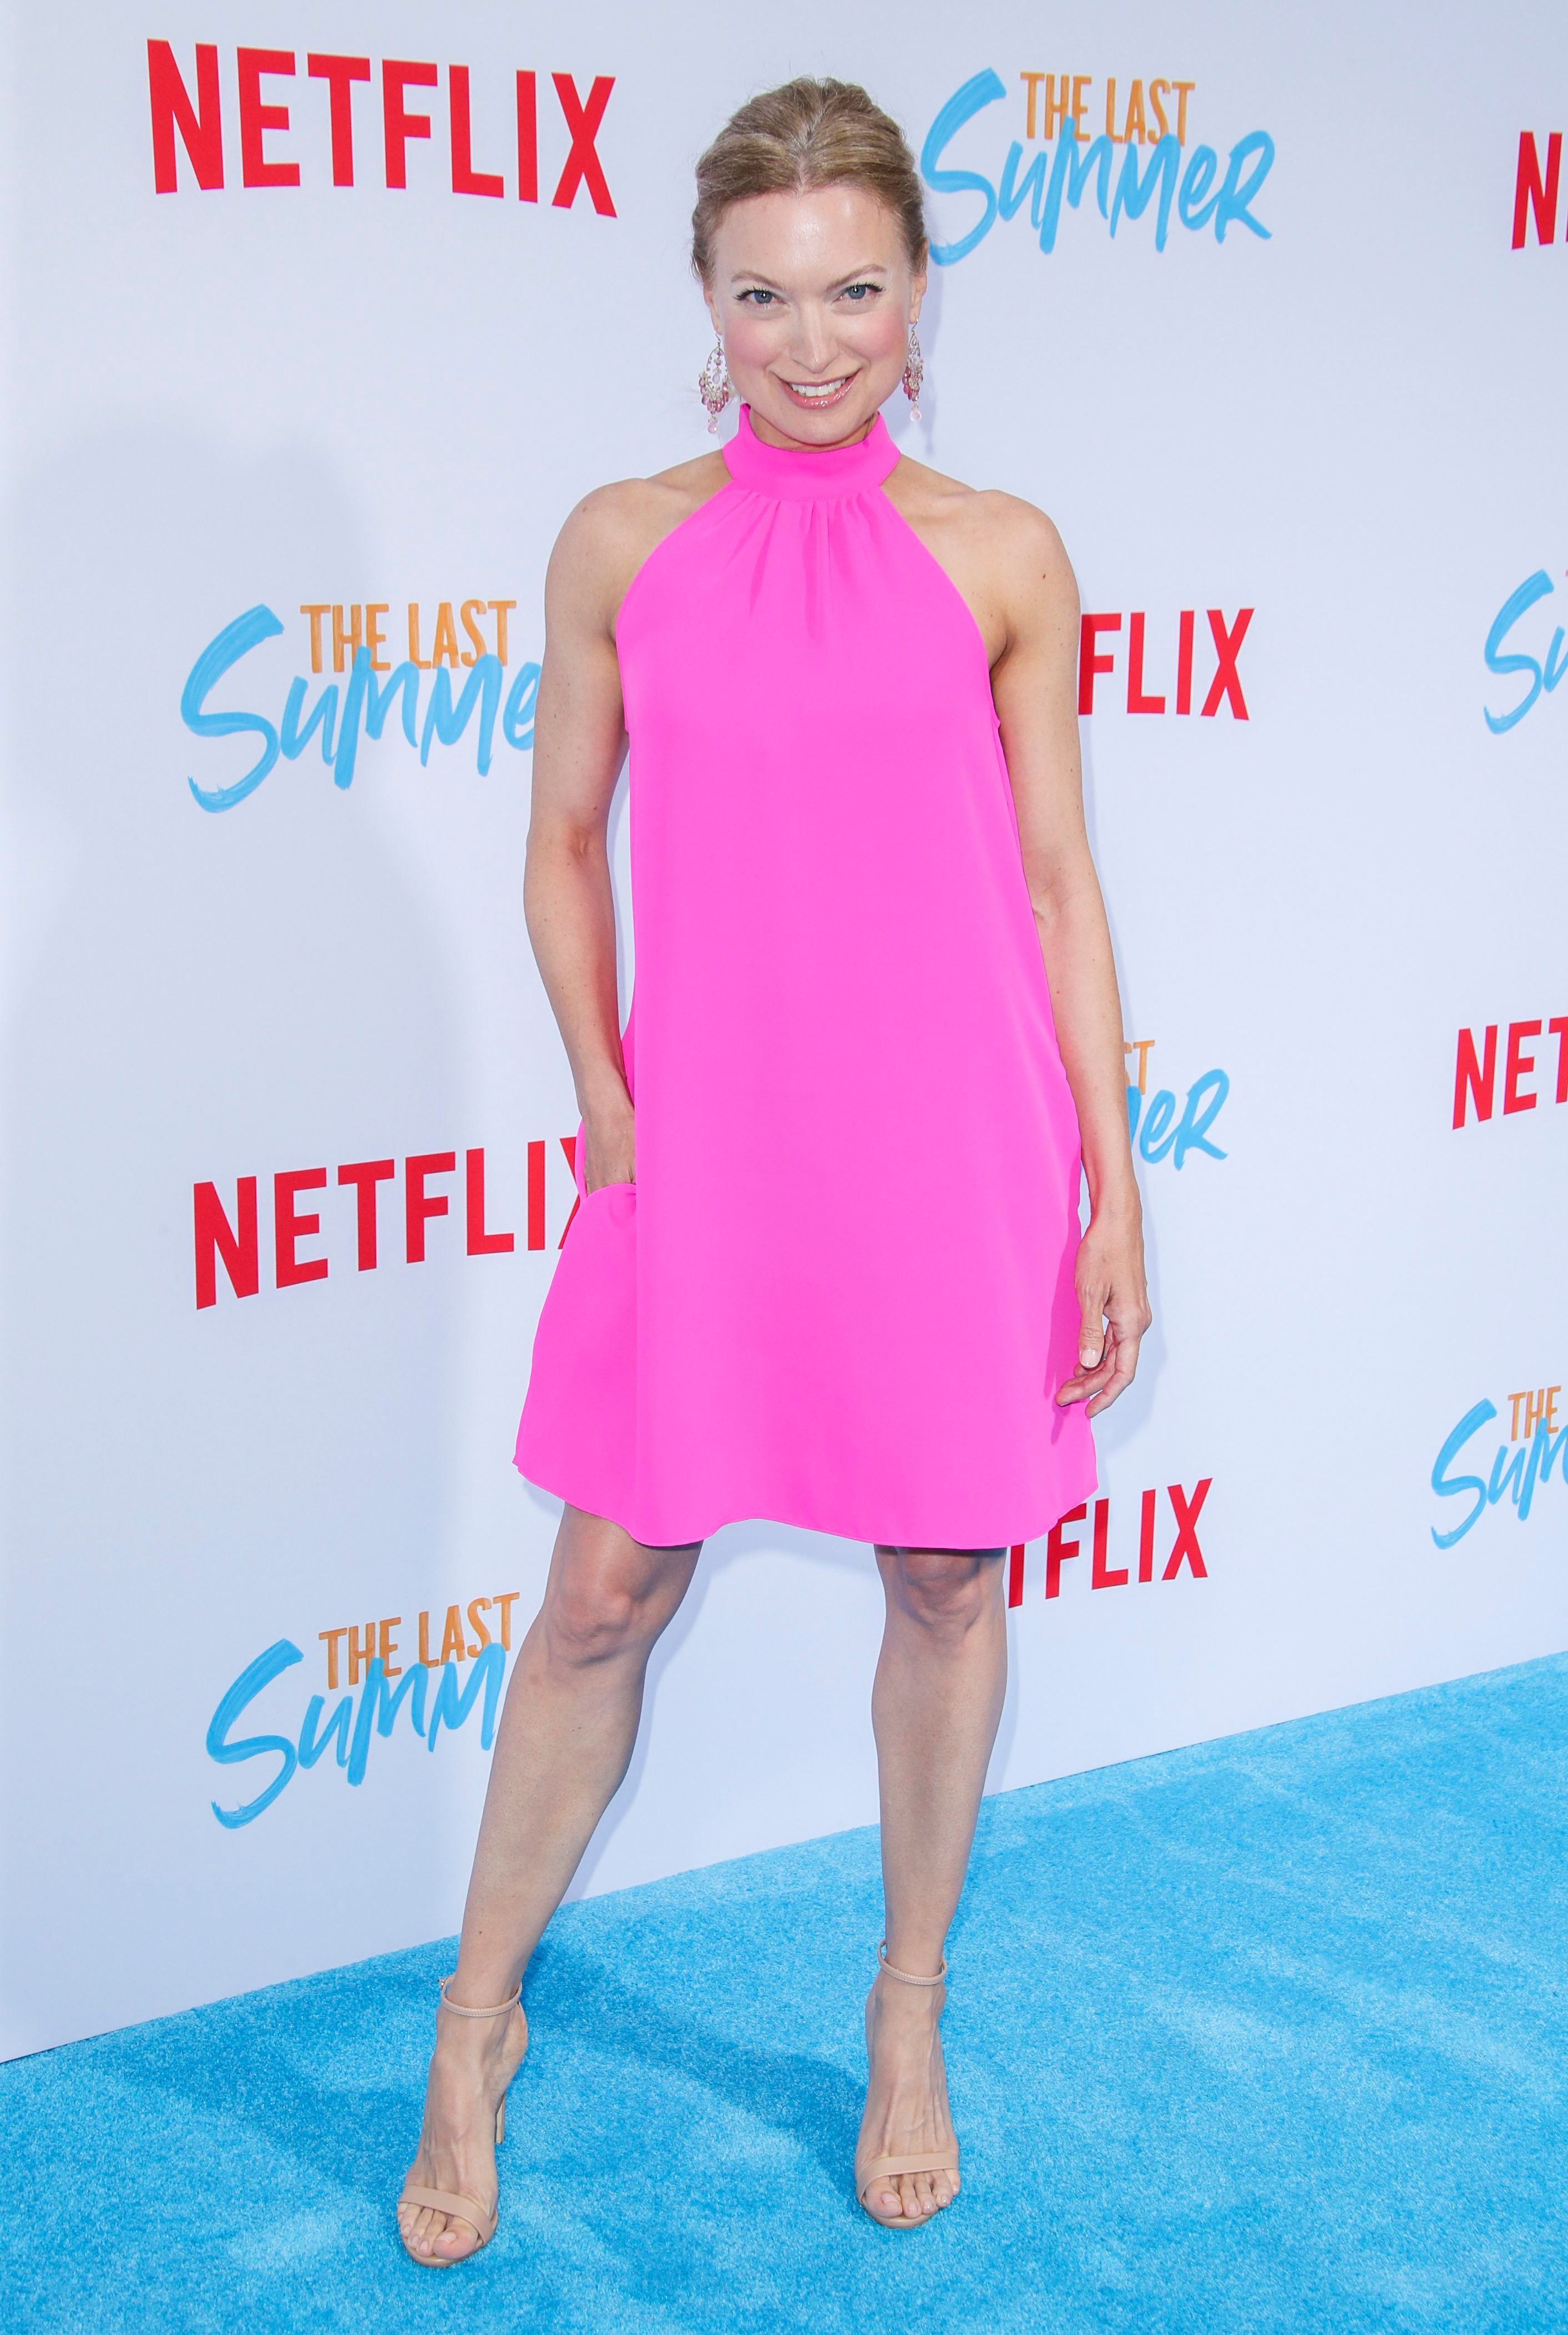 """Nicole Forester """"The Last Summer"""" Film Premiere Los Angeles 29 April 2019"""